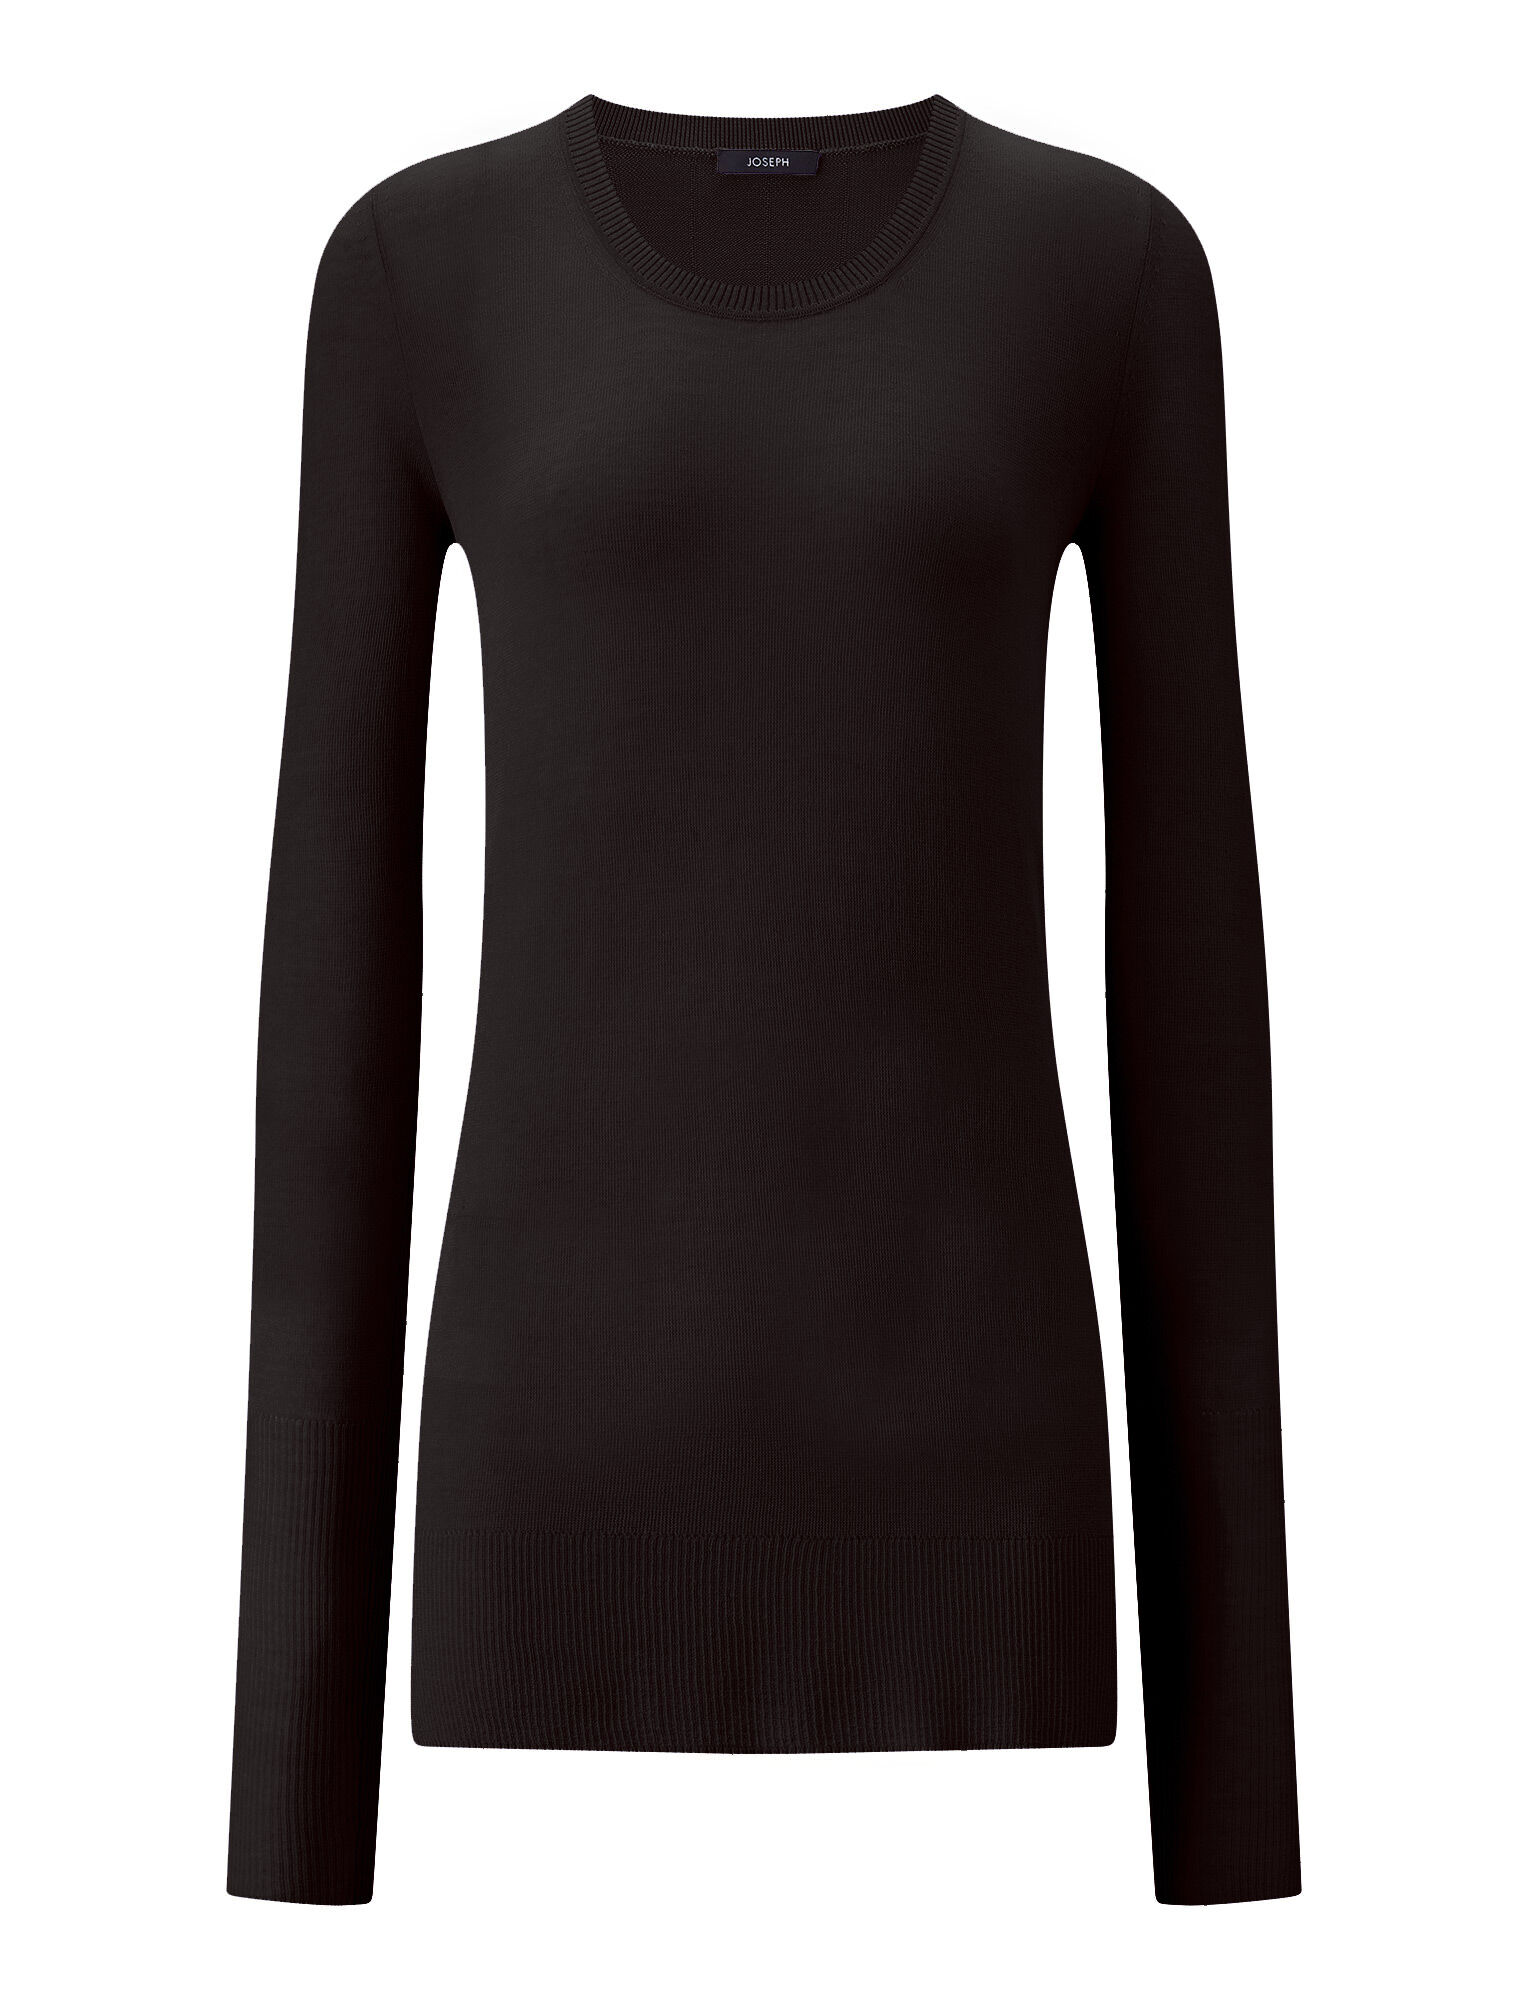 Joseph, Sheer Cotton Knit, in BLACK